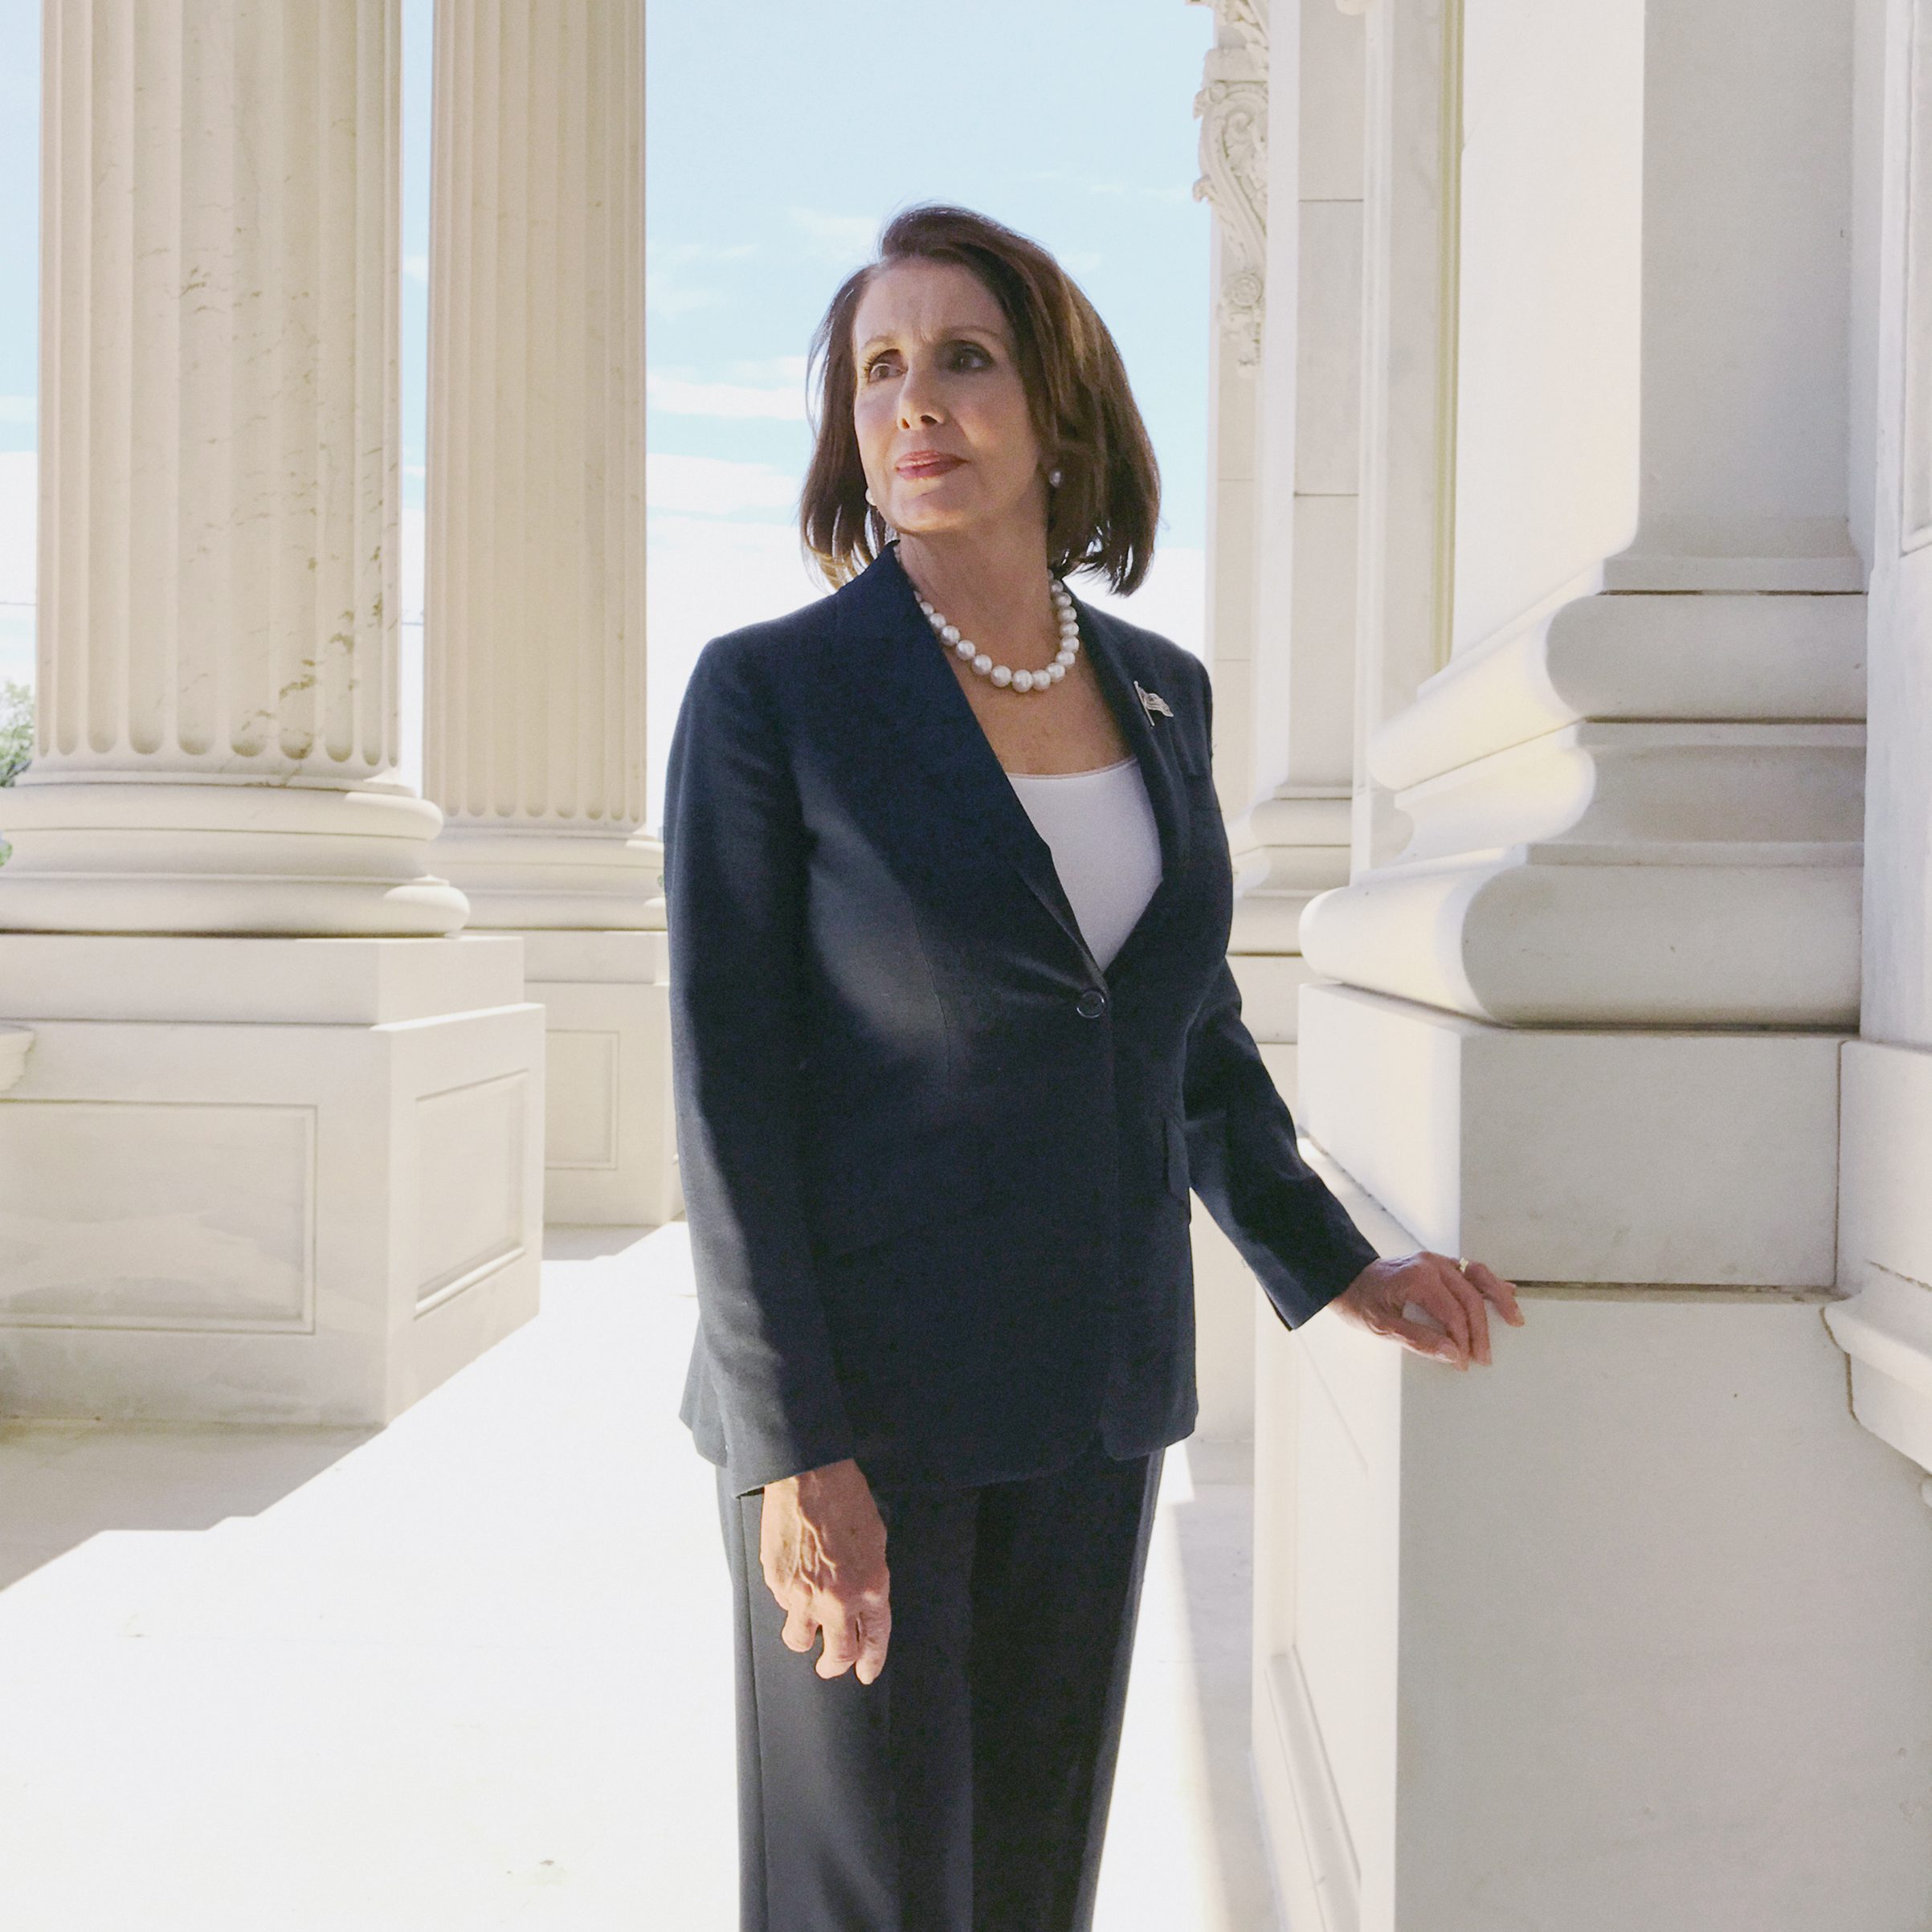 Portrait of Democratic Leader Nancy Pelosi, photographed at The Capitol in Washington, DC, Sept. 22, 2016.